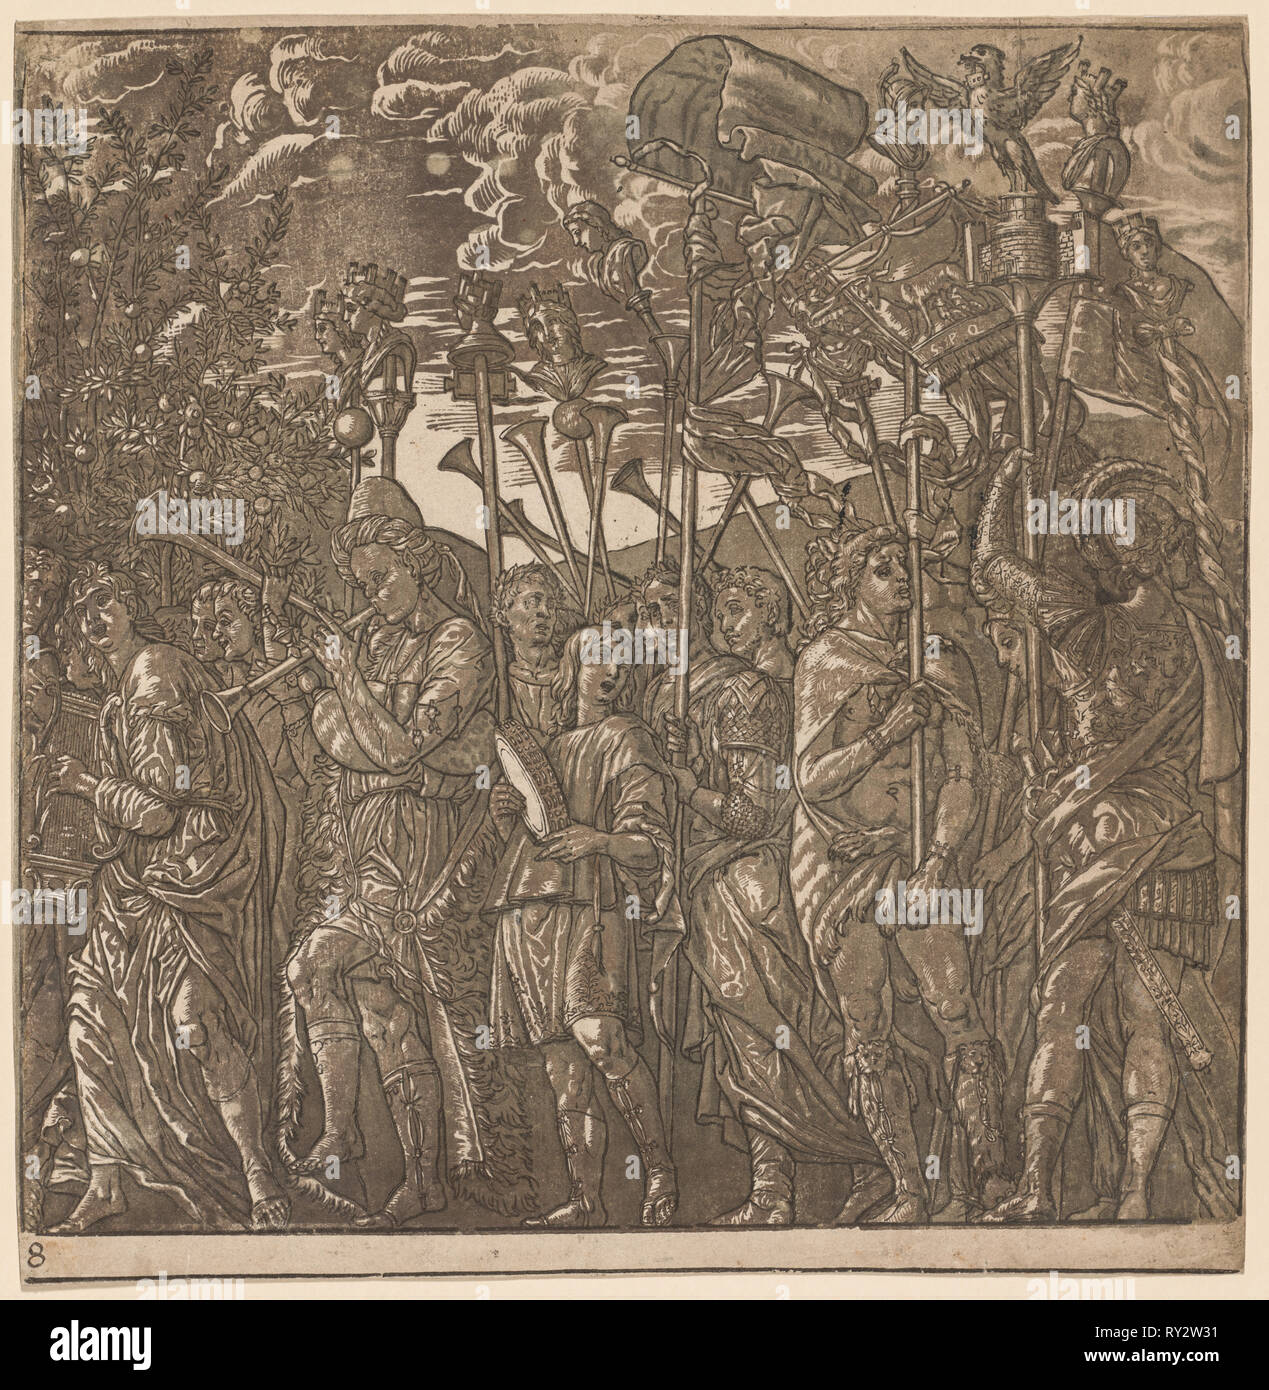 The Triumph of Julius Caesar: Soldiers Carrying Banners and Standards, 1593-99. Andrea Andreani (Italian, about 1558–1610), after Andrea Mantegna (Italian, 1431-1506). Chiaroscuro woodcut - Stock Image